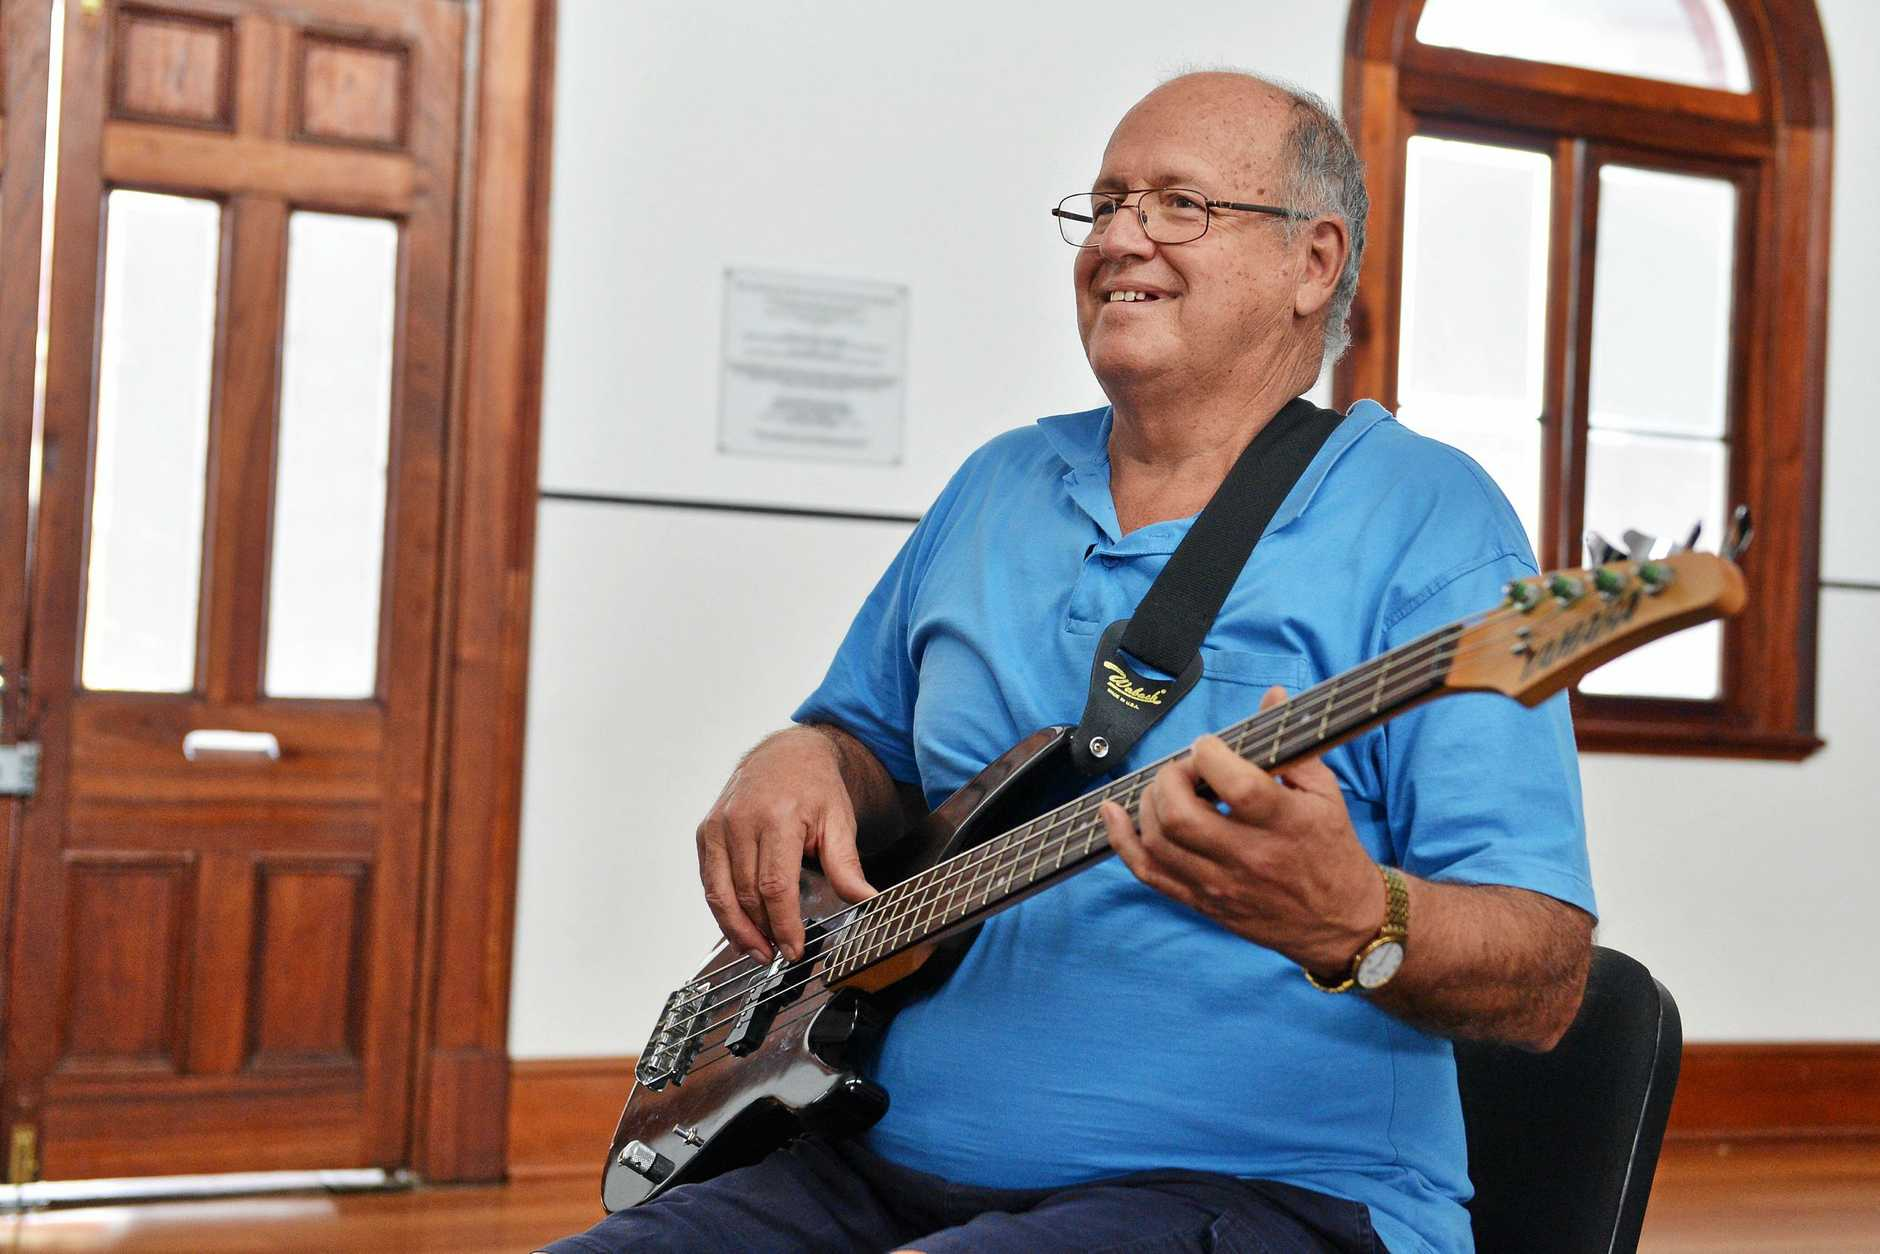 Preparing for Gympie's woodNmusic festival being held at the AICM Hall, 26 Channon Street, Gympie on May 29, 30 & 31st.  Dr. Geoff Walden strumming on a base guitar.   Photo Greg Miller / Gympie Times